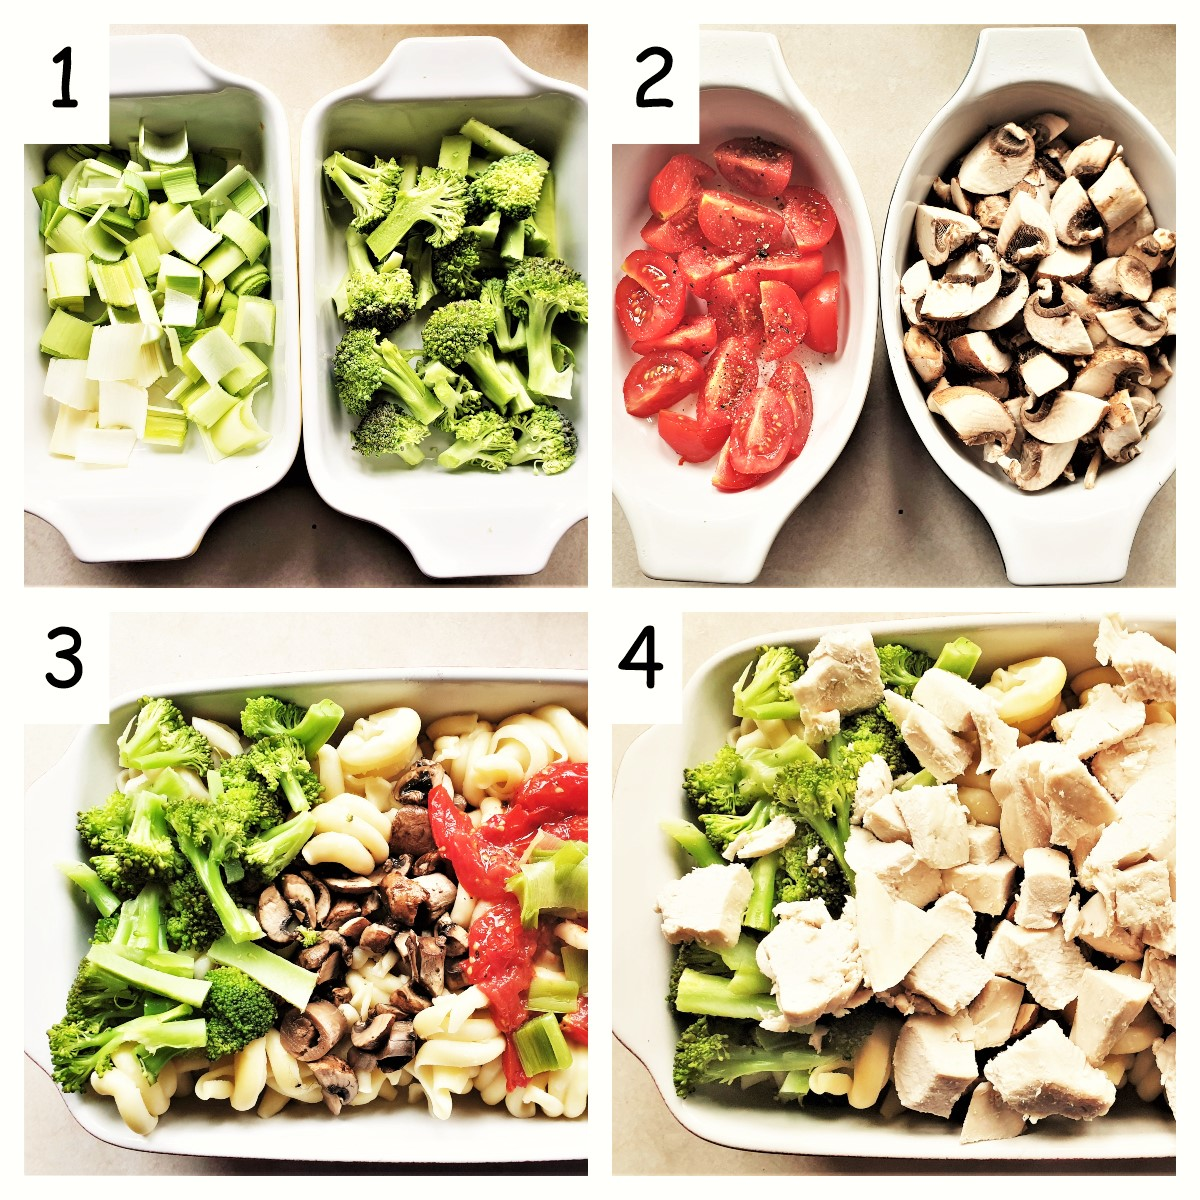 A collage of 4 images showing how to prepare the vegetables and layer them in a baking dish with the pasta.